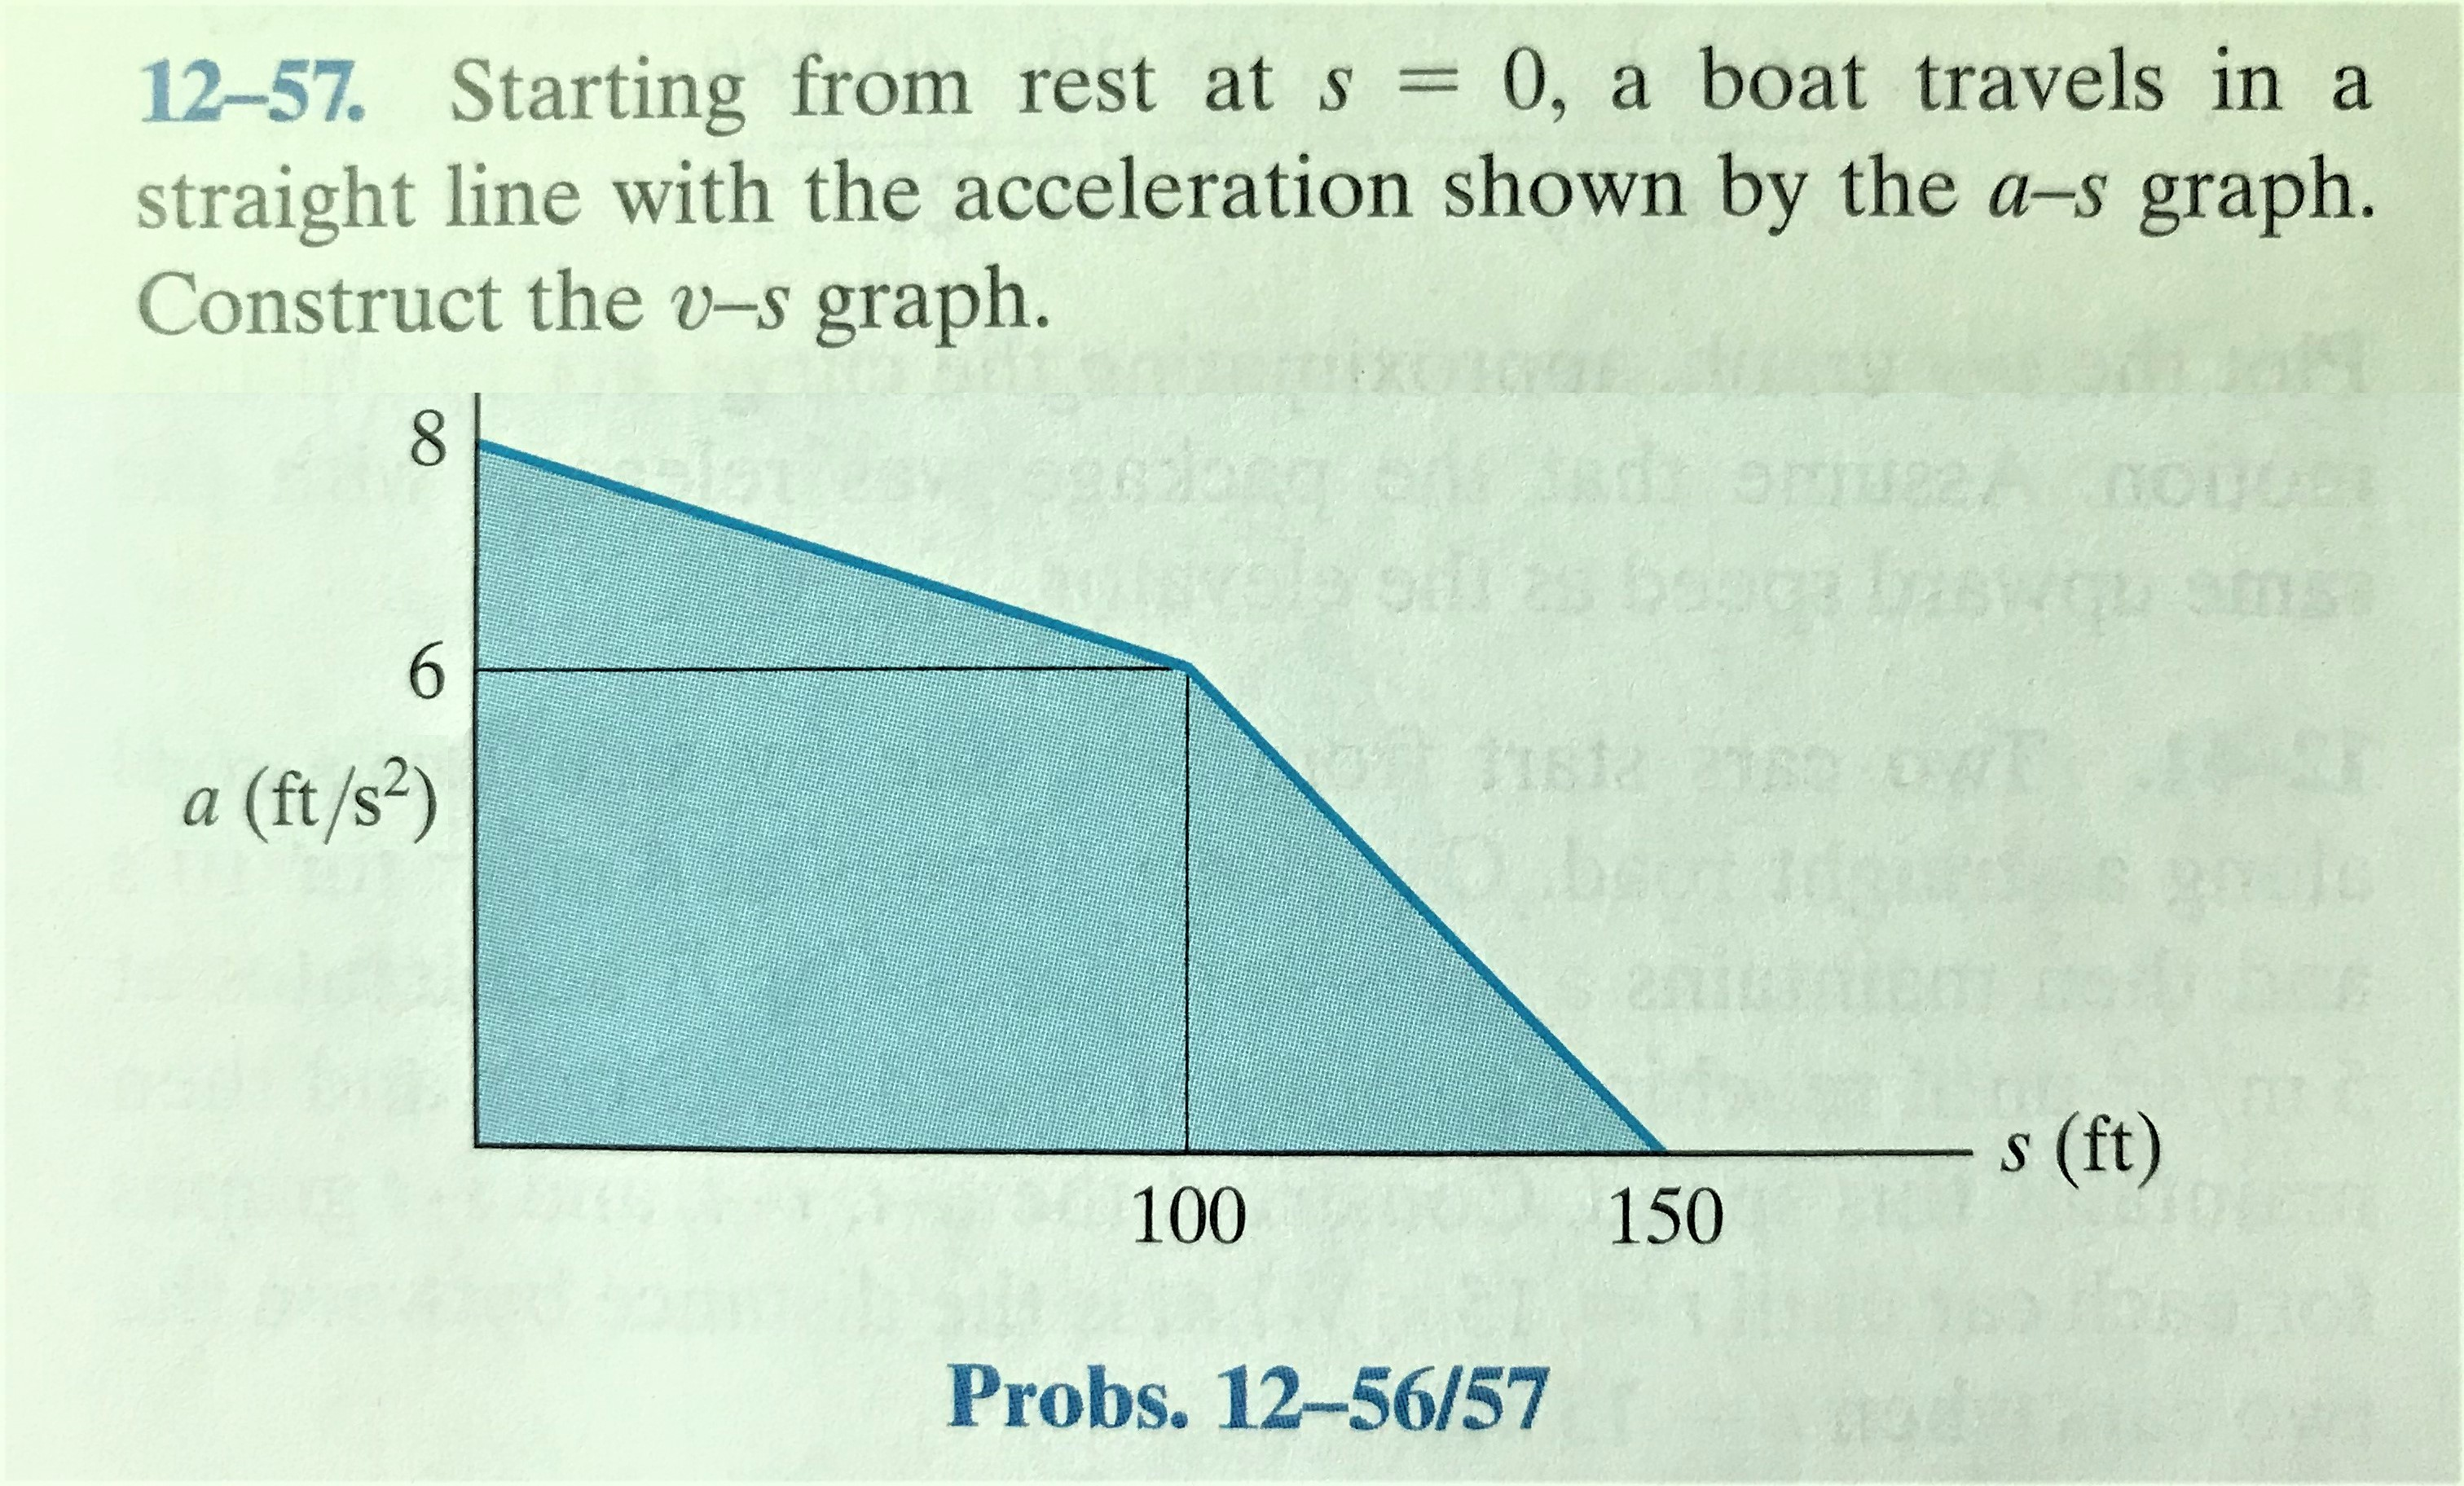 12-57. Starting from rest at s 0, a boat travels in a straight line with the acceleration shown by the a-s graph. Construct the v-s graph. 8 a (ft/s²) s (ft) 100 150 Probs. 12-56/57